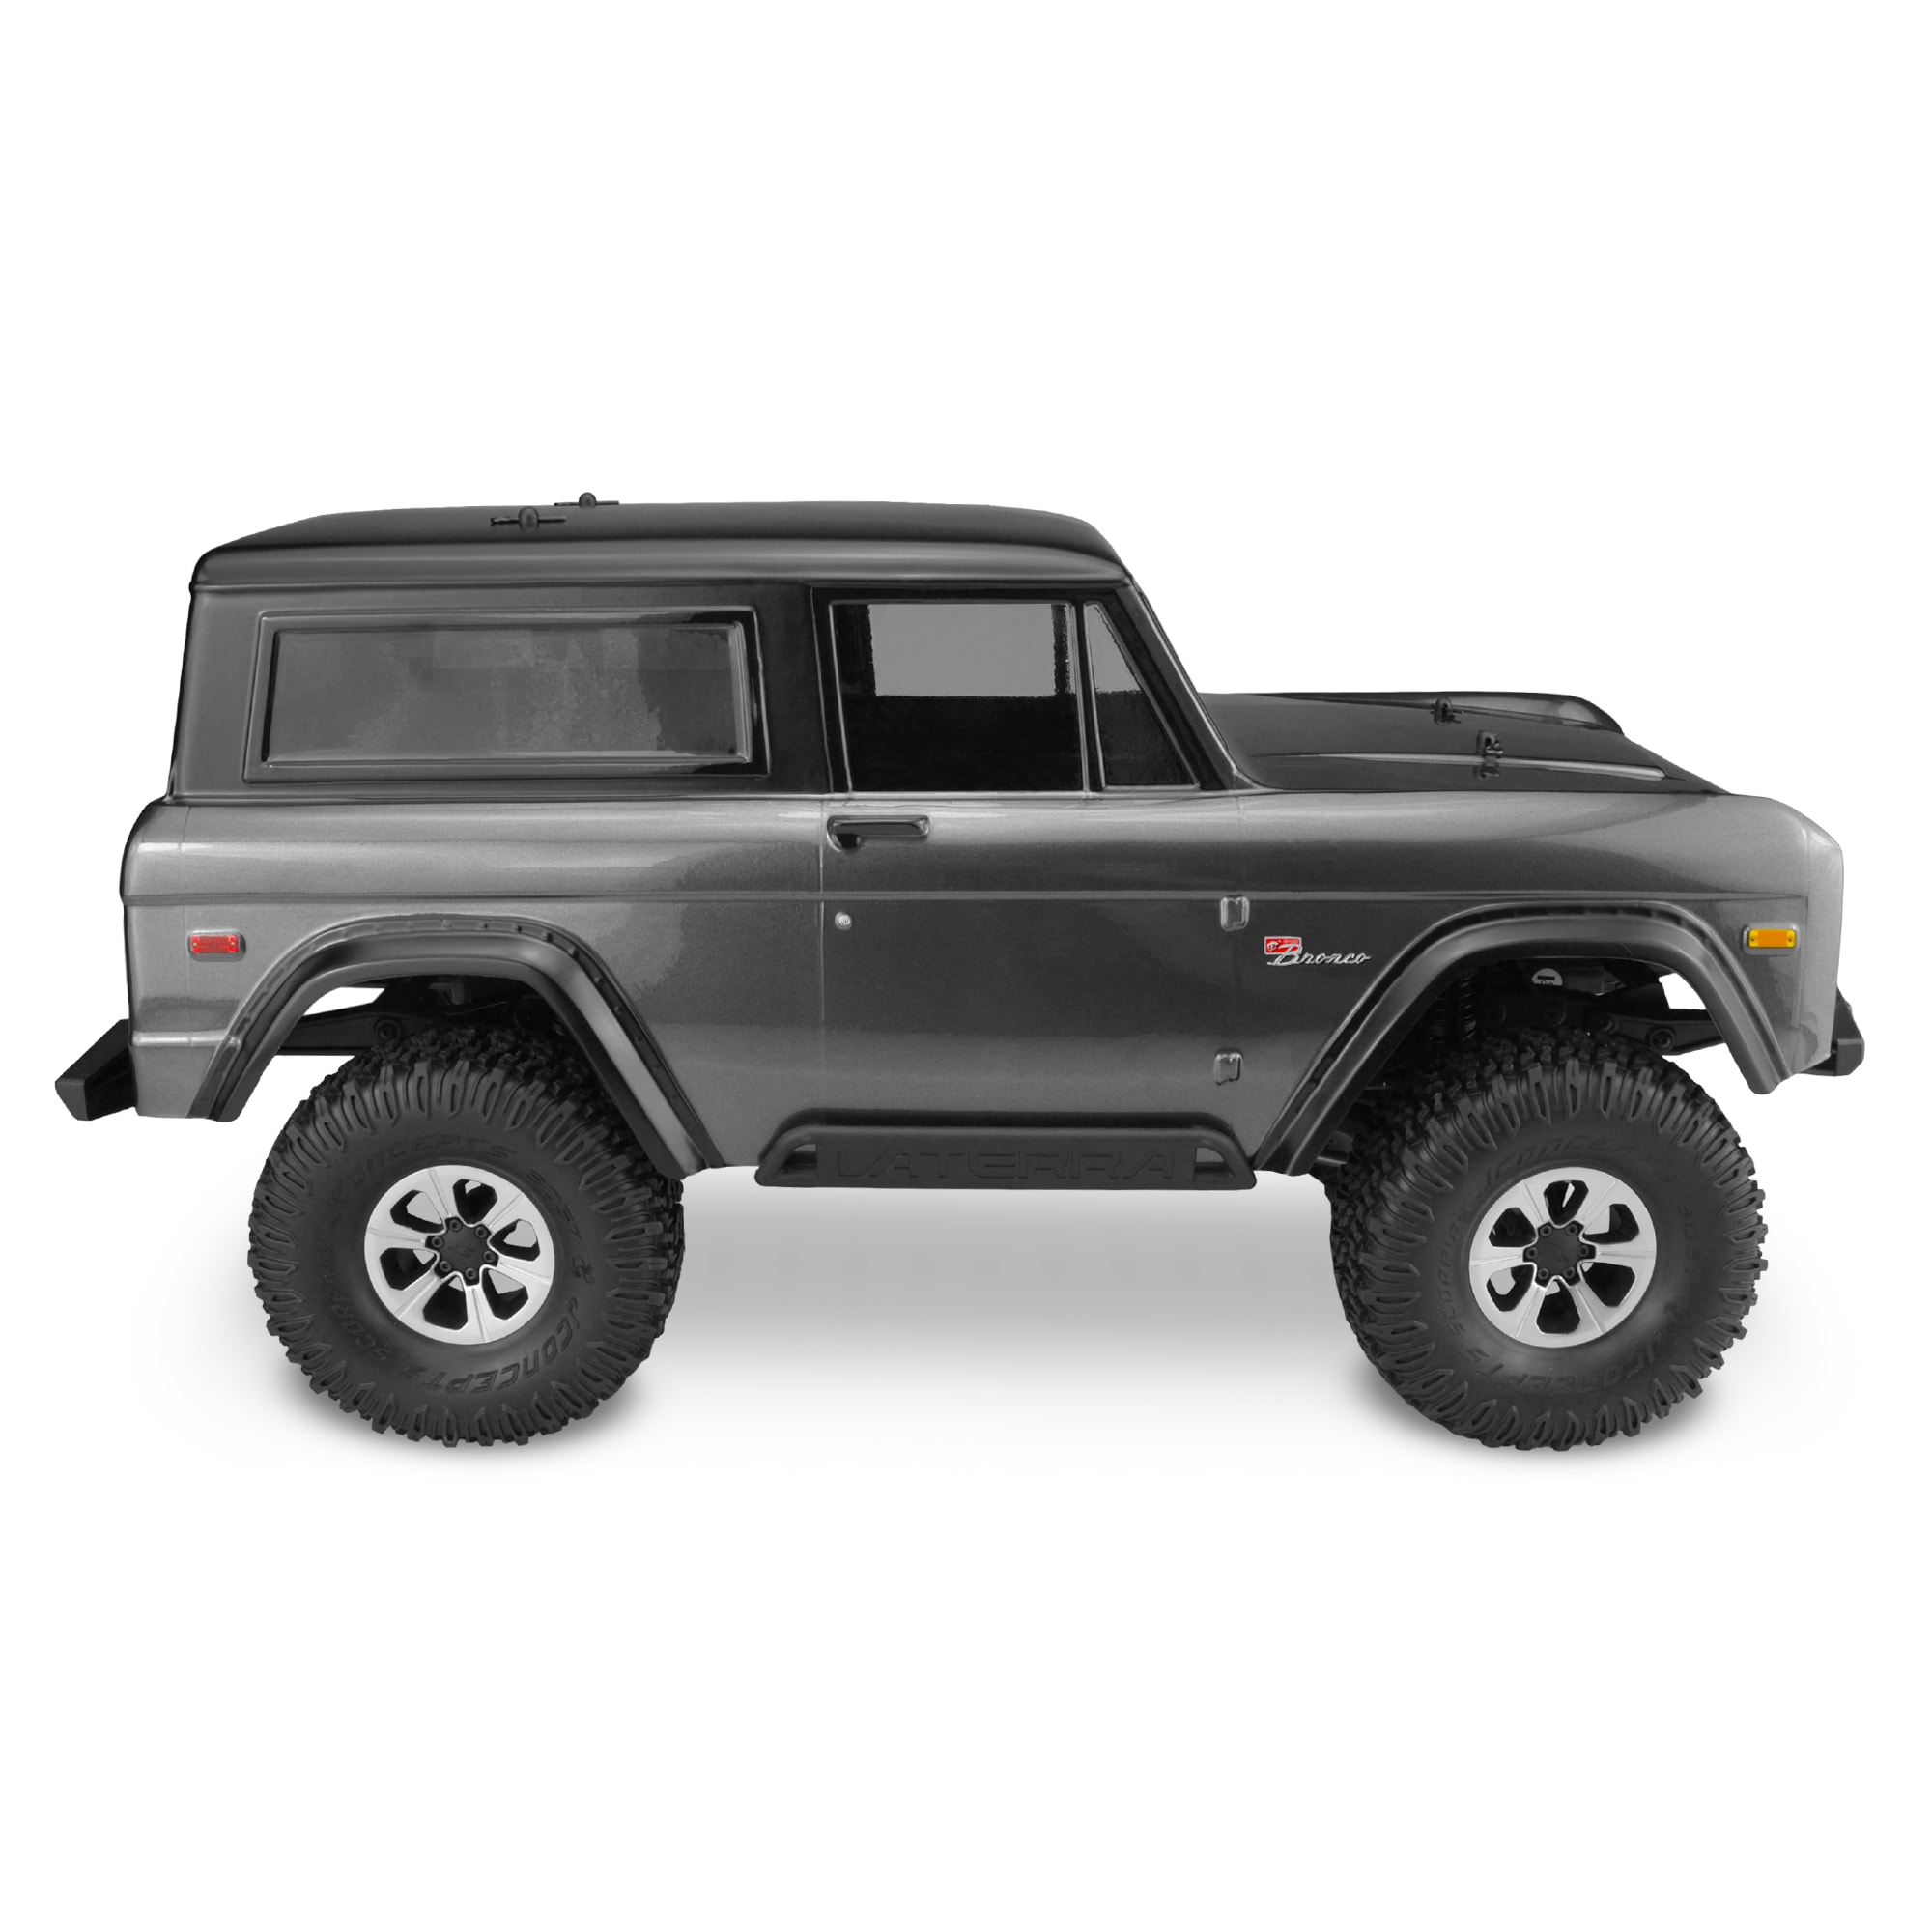 Build a Retro Rig with JConcepts New 1/10 '74 Ford Bronco Body